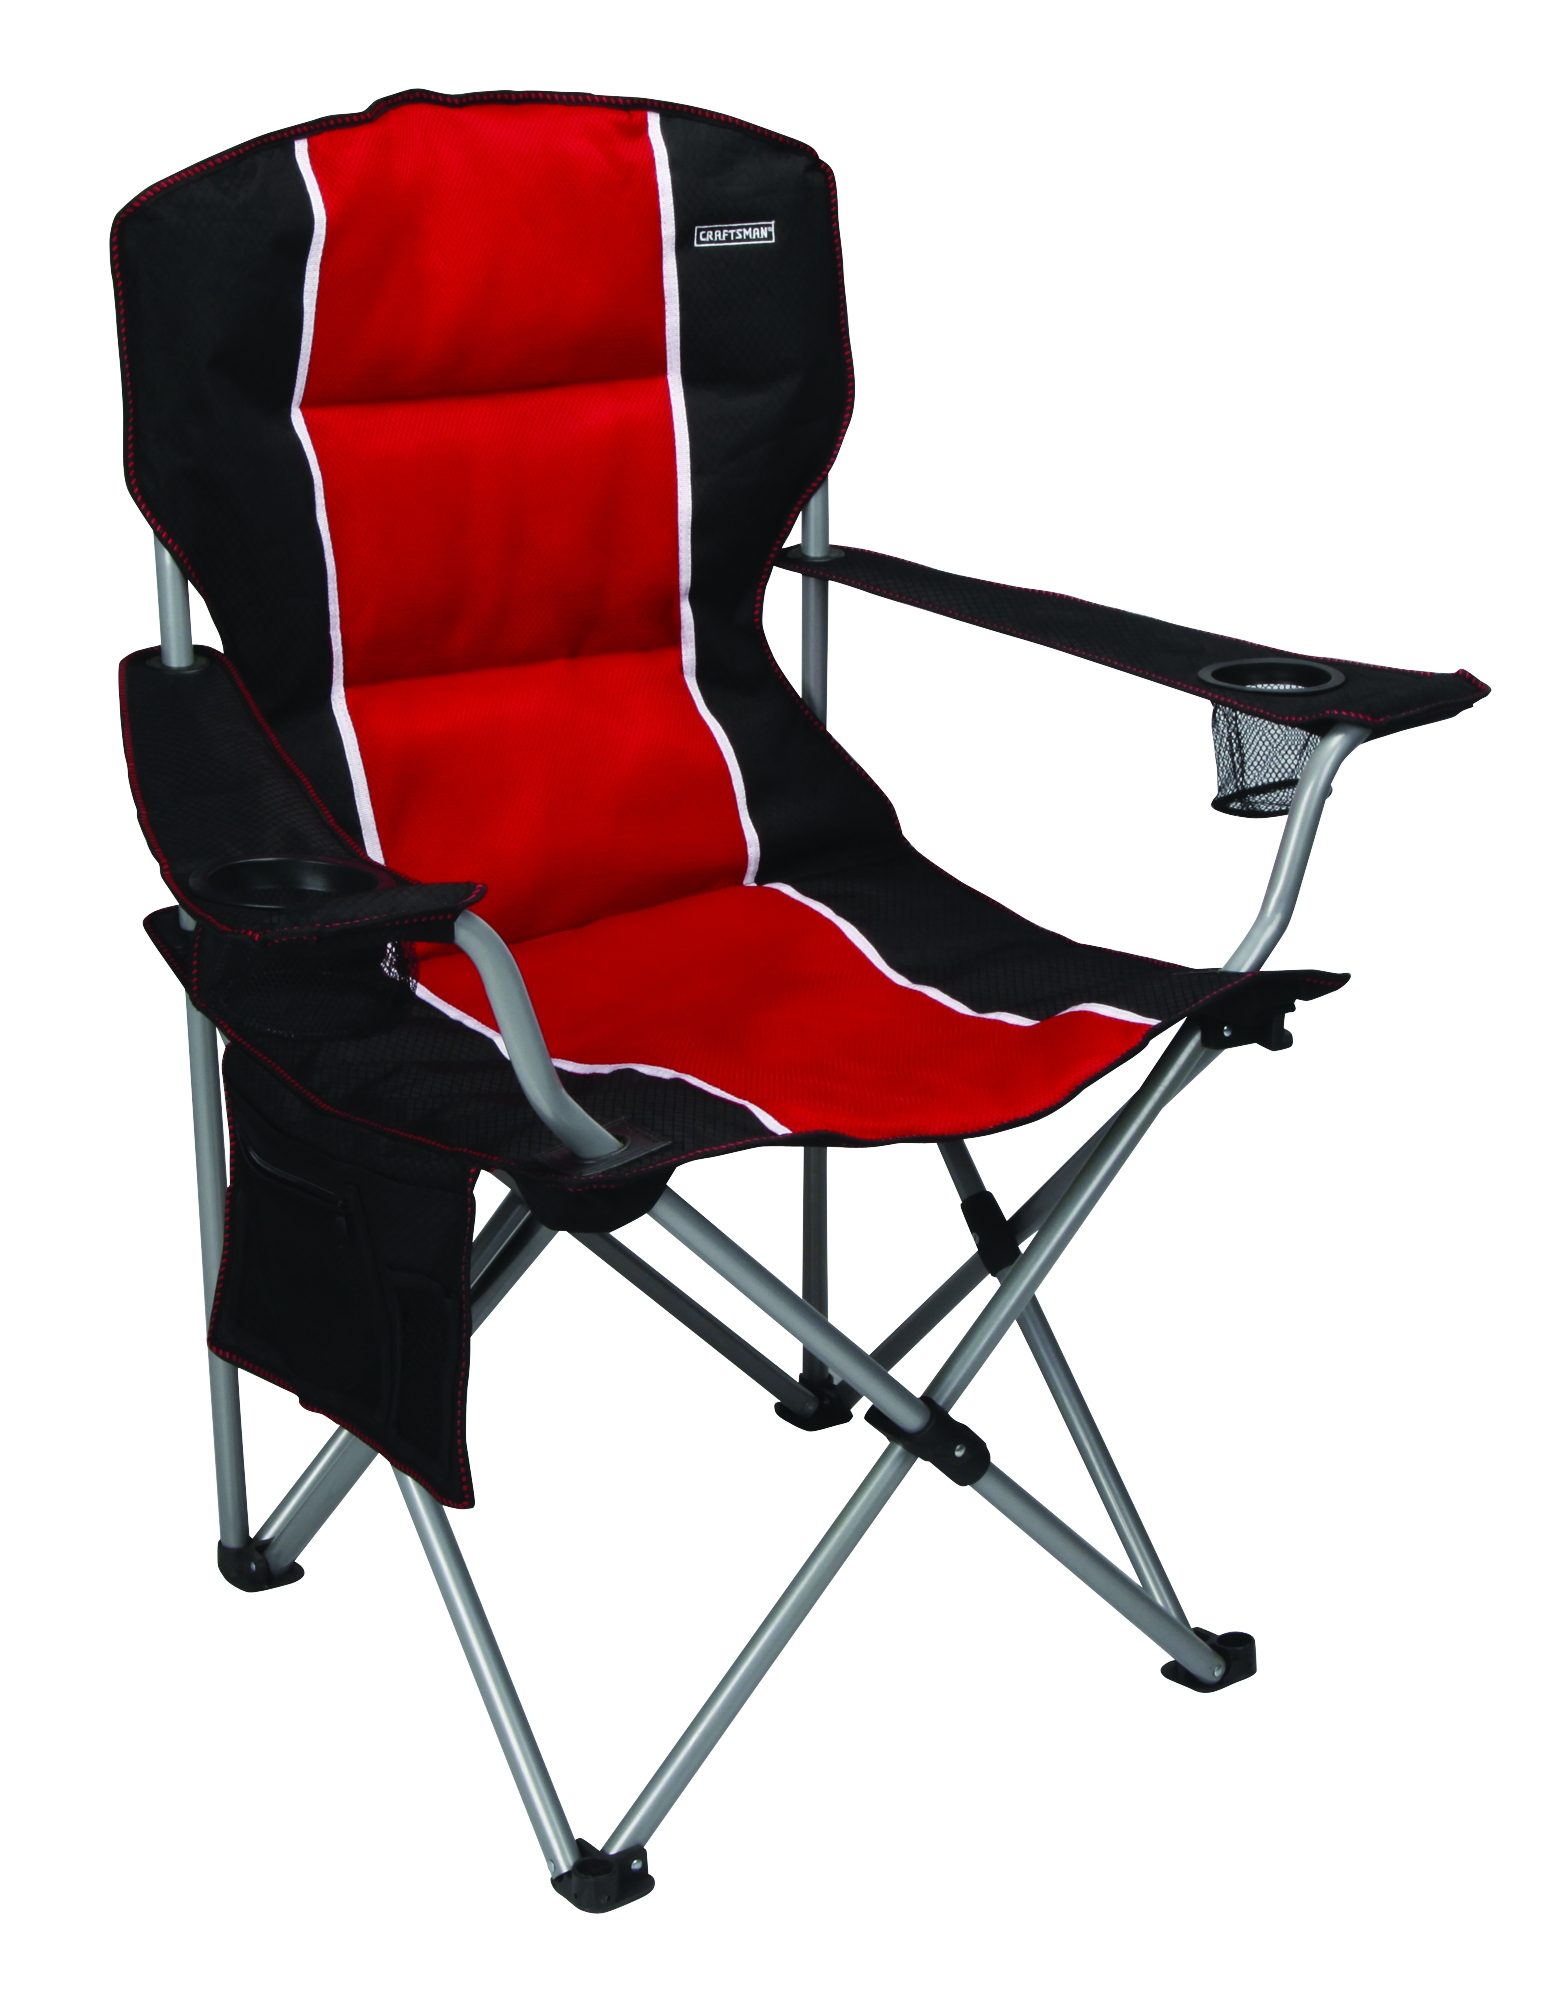 Best Camp Chair Craftsman Padded Chair Red Awsome Folding Outdoor Camping